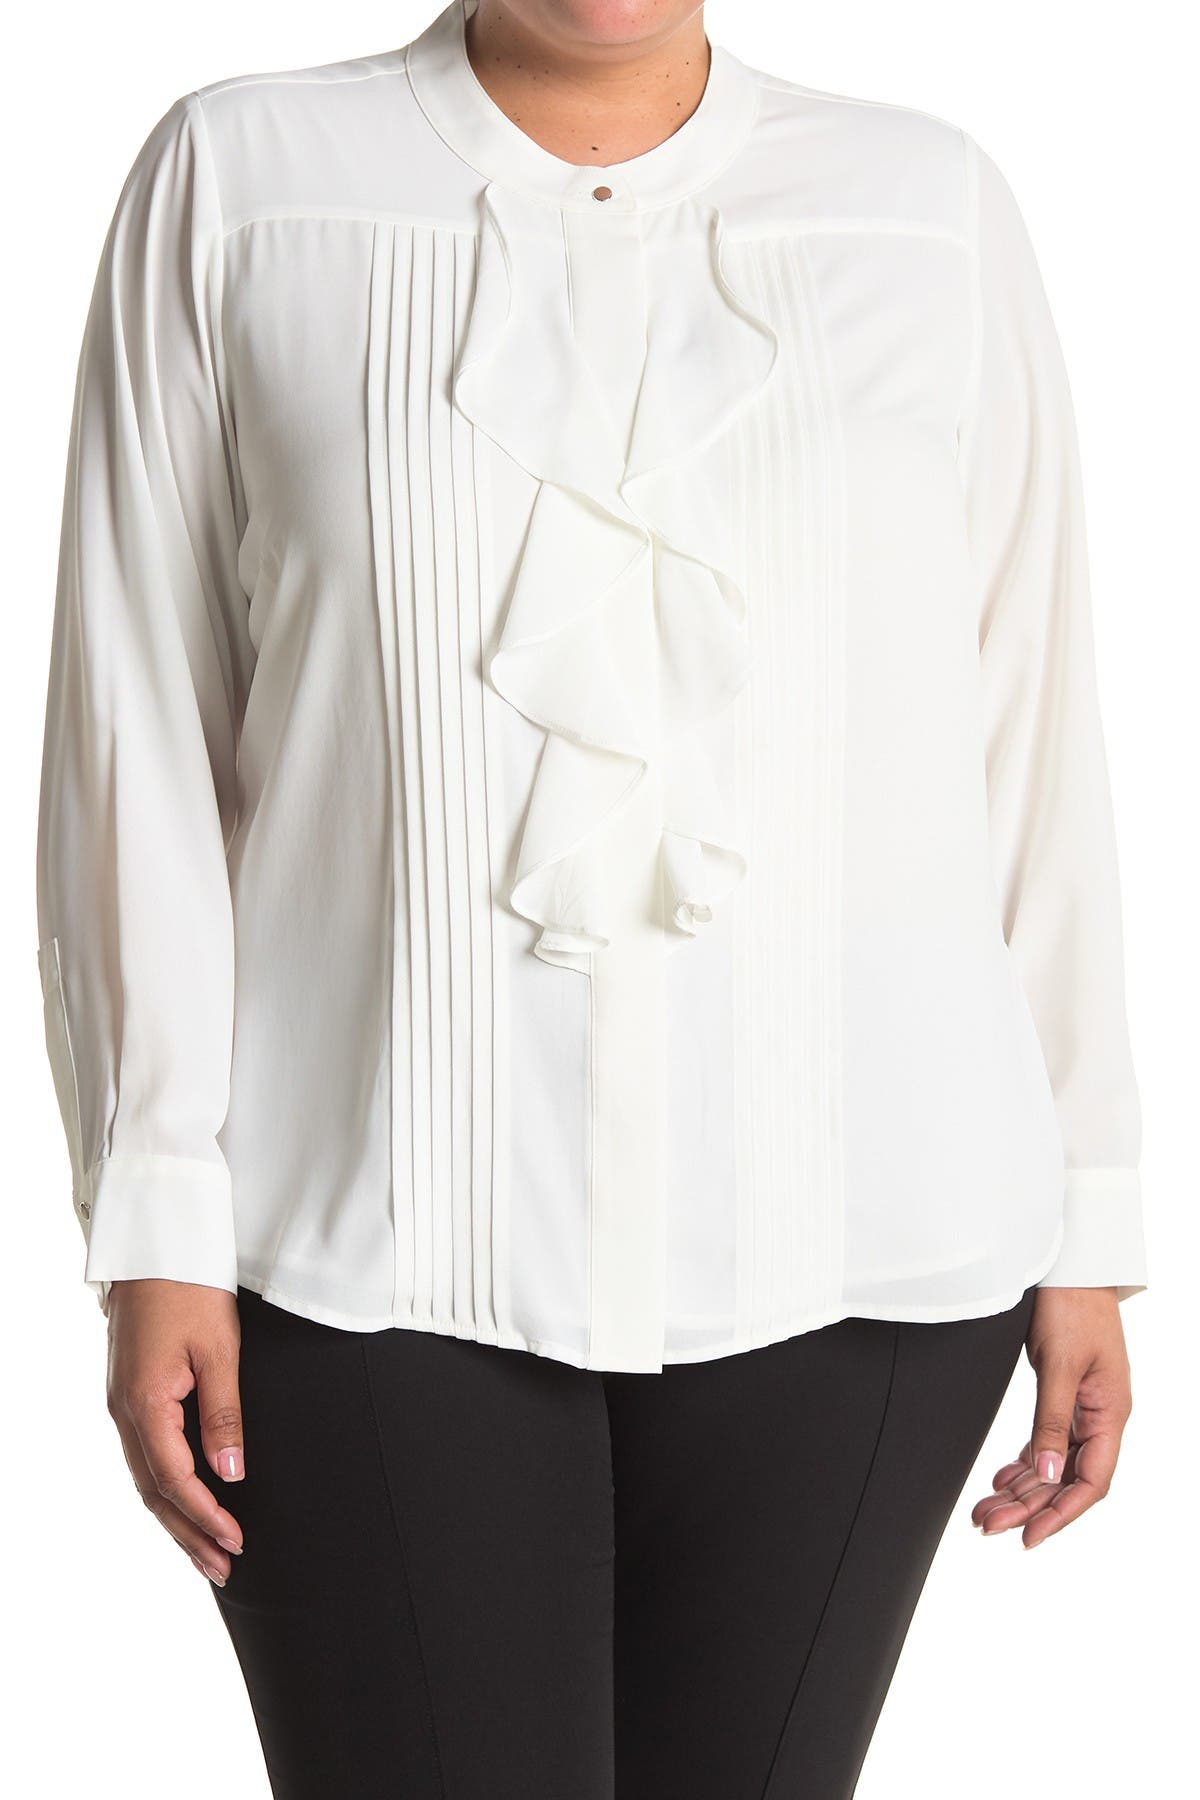 60s Shirts, T-shirts, Blouses, Hippie Shirts Calvin Klein Long Sleeve Ruffle Blouse Size 3X - Cream at Nordstrom Rack $44.97 AT vintagedancer.com